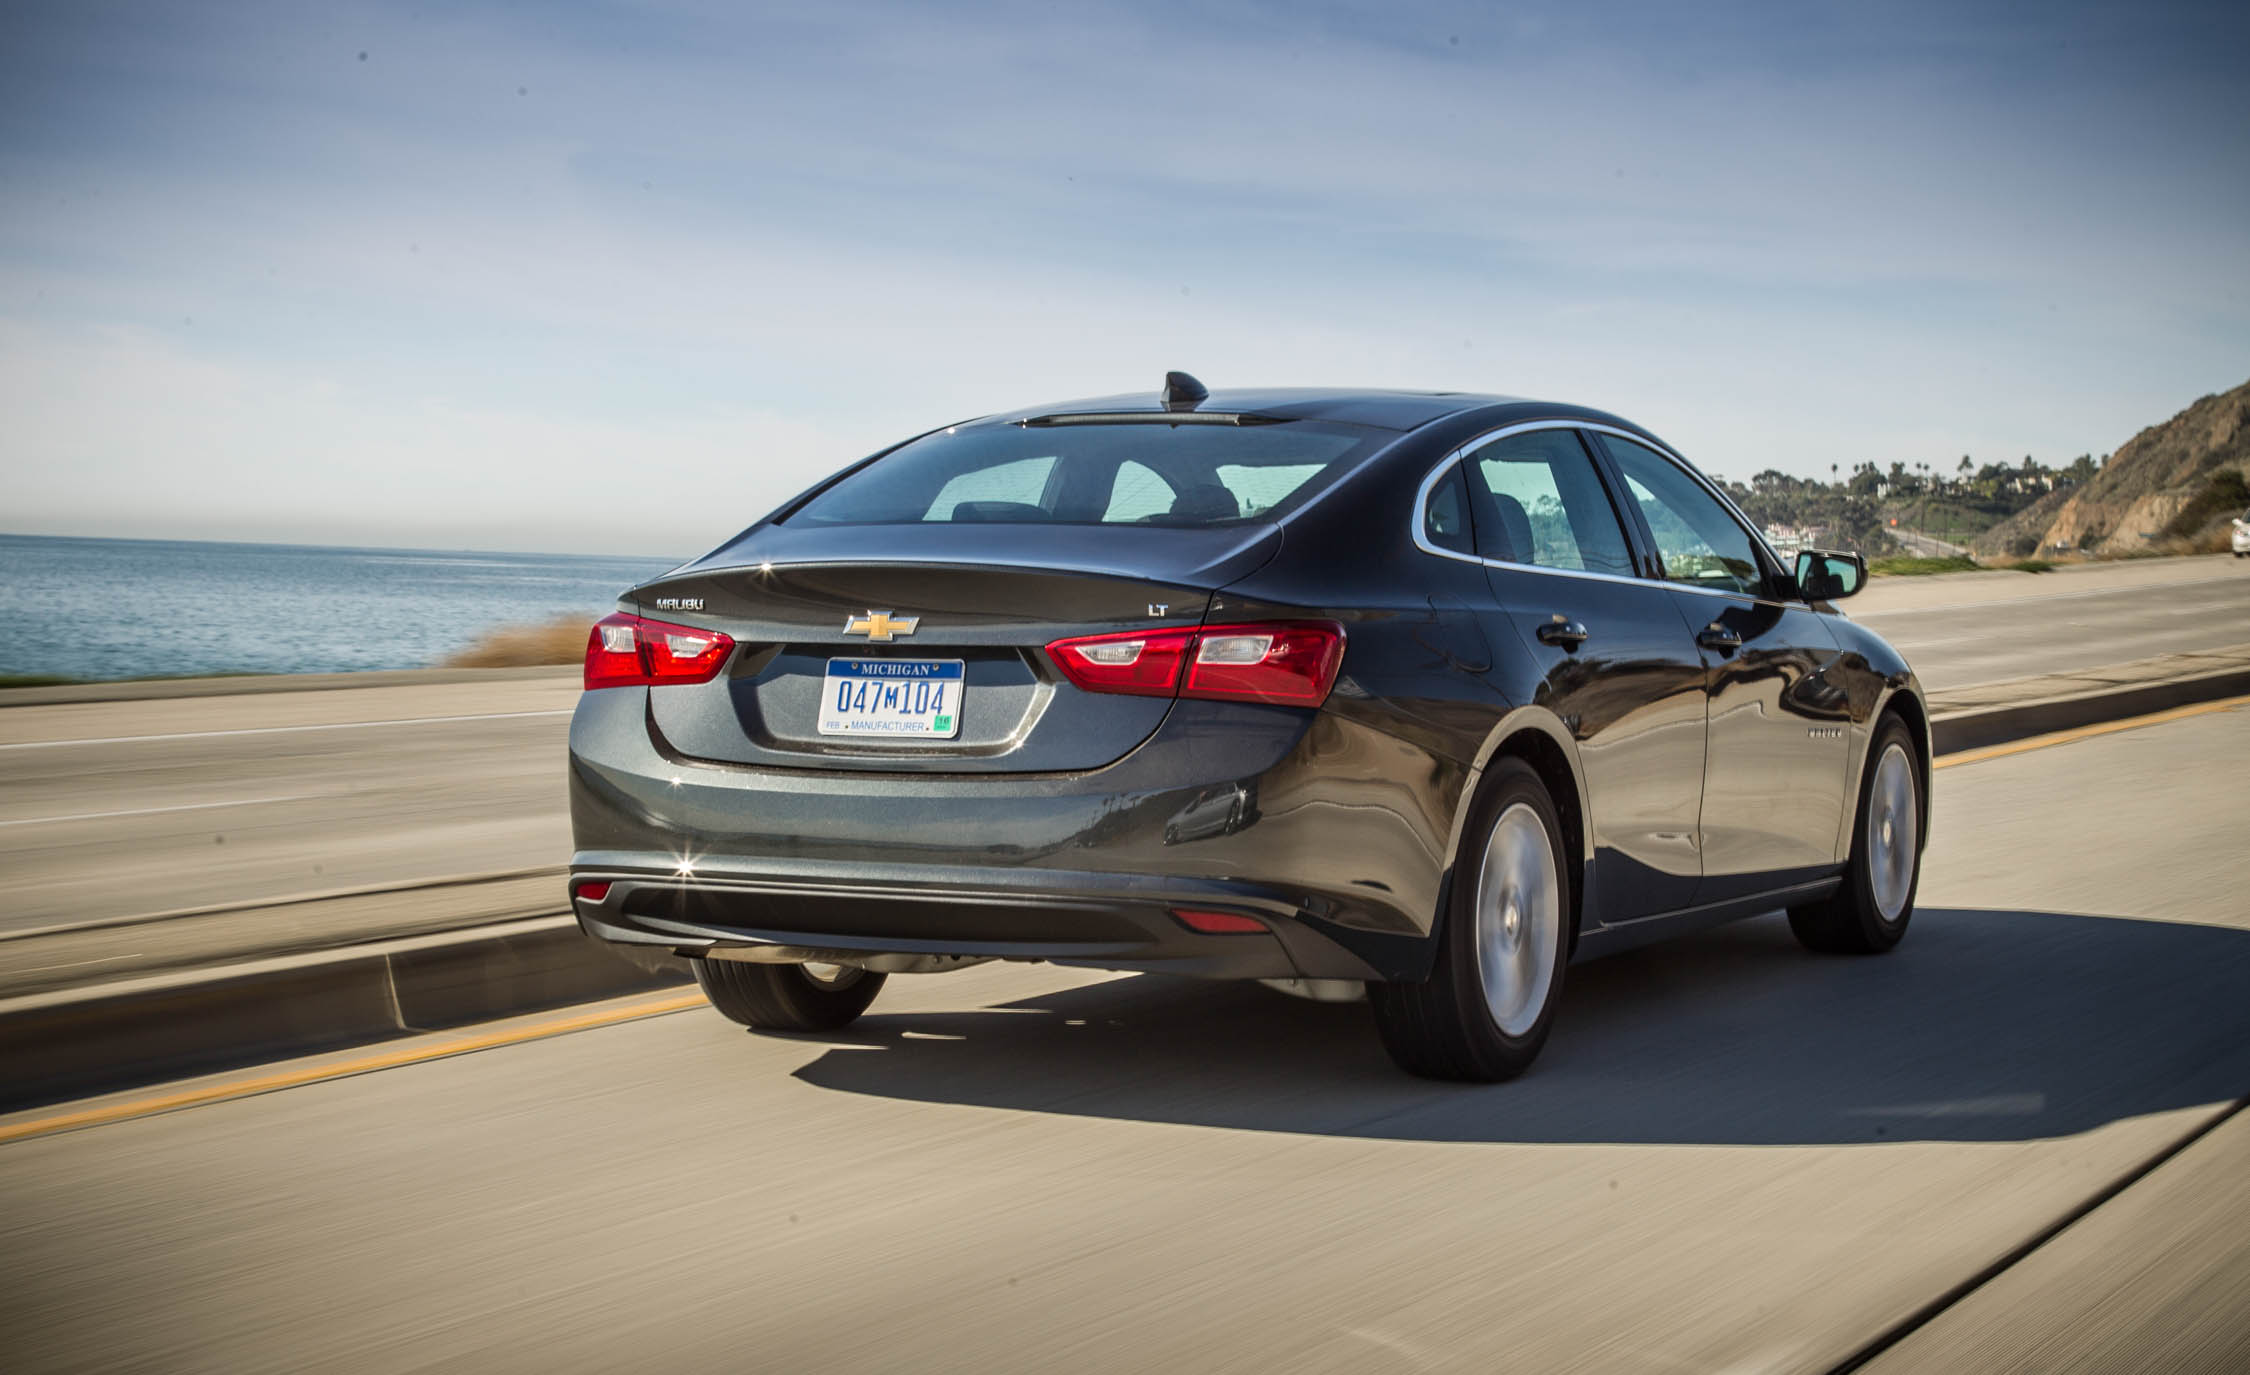 2016 Chevrolet Malibu LT Exterior Full Rear and Side